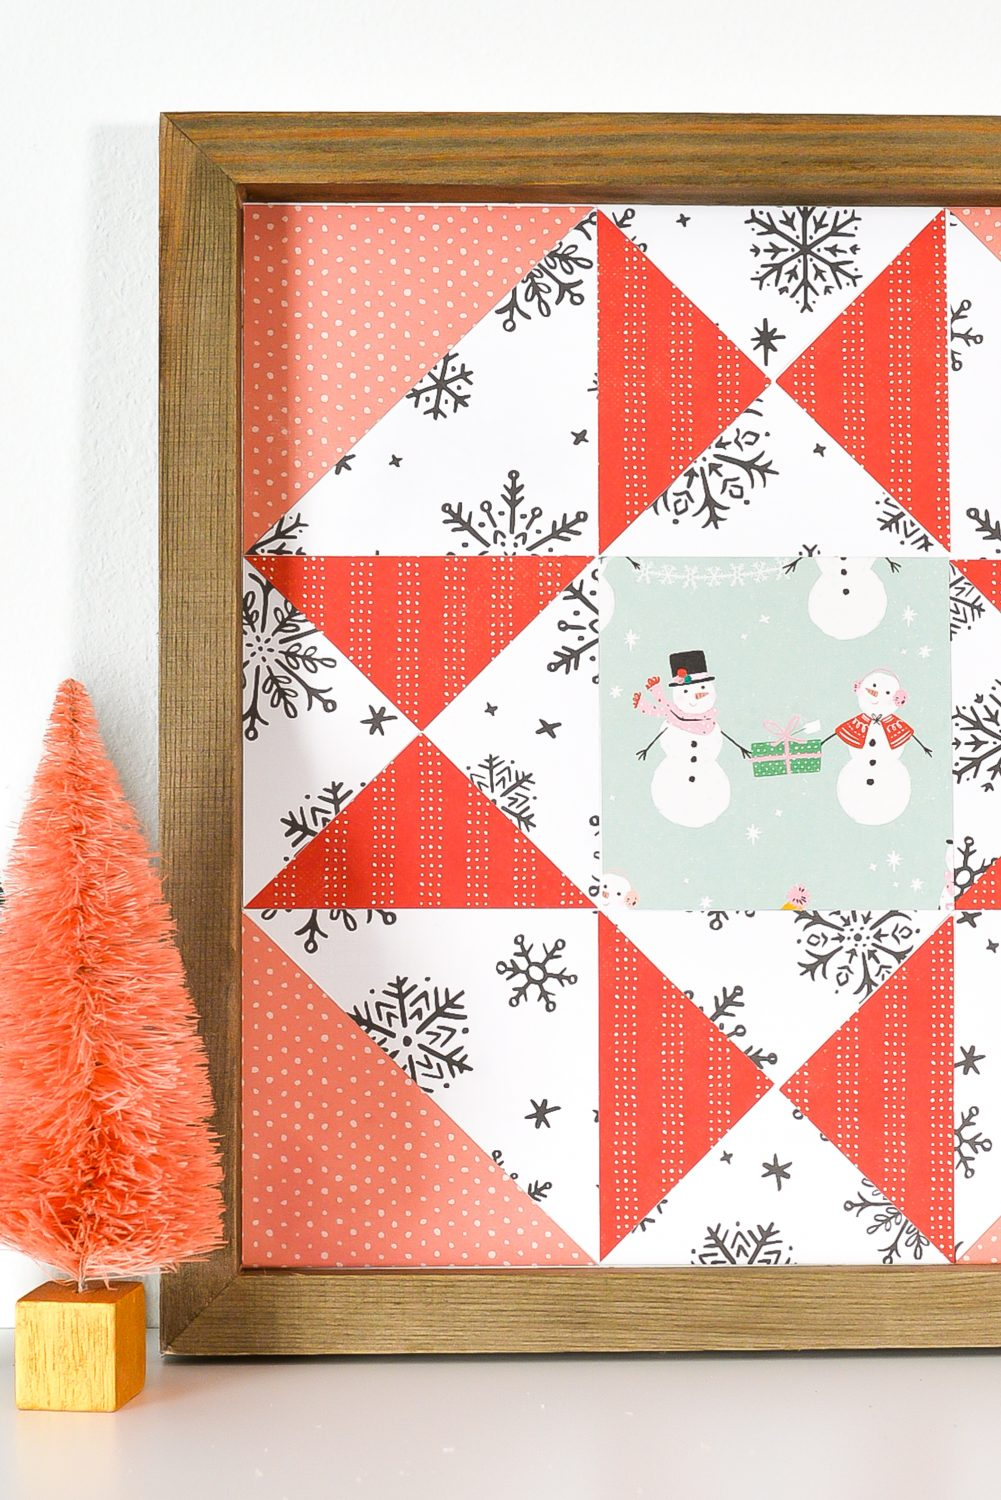 Closeup of Christmas Paper Quilt Block on shelf with faux tree decor